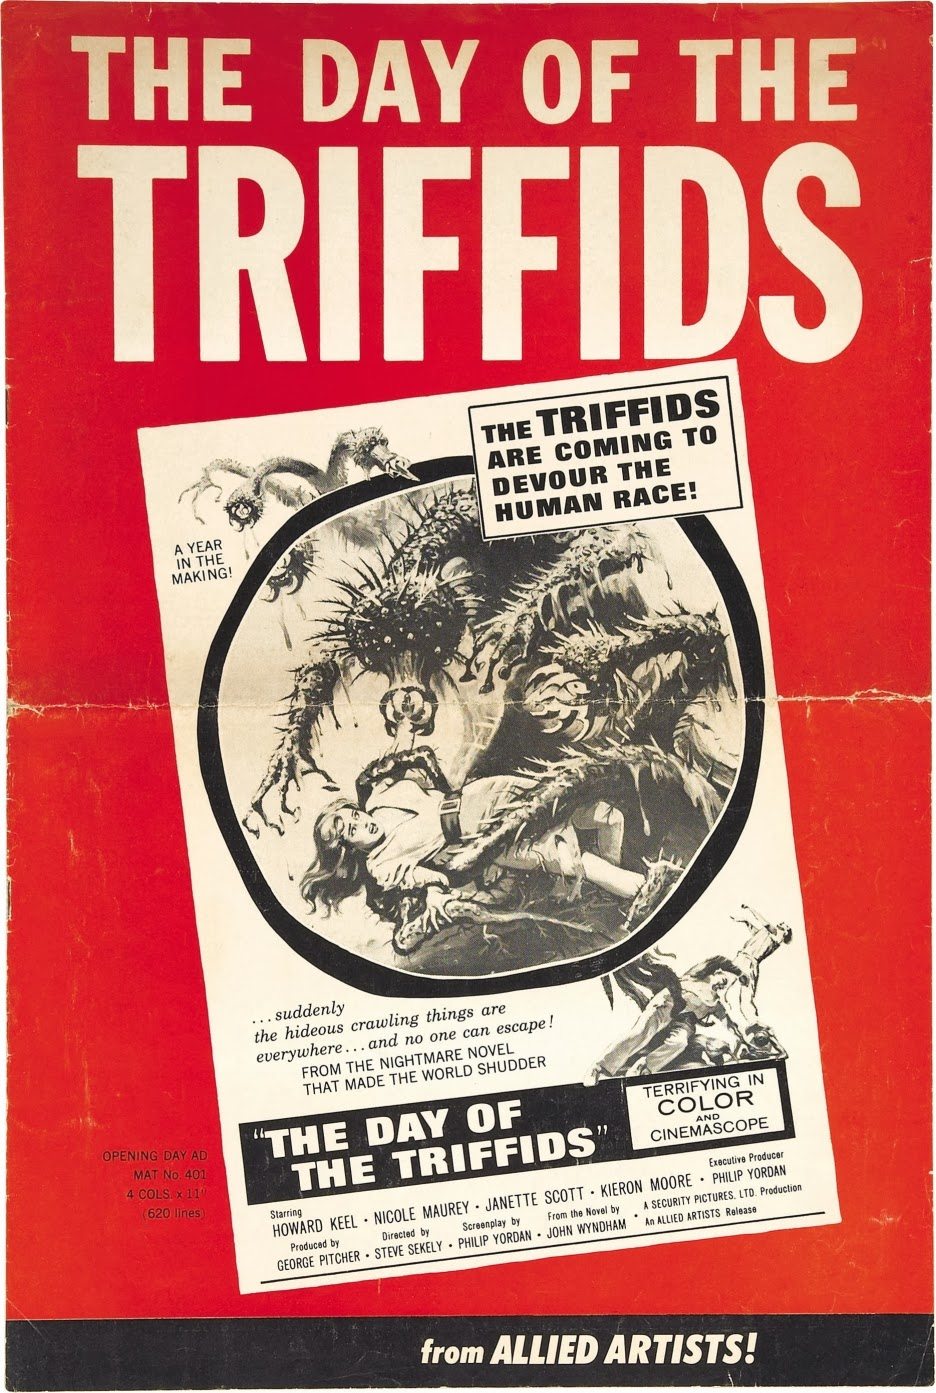 the day of the triffids essay 'brave new world' by aldous huxley and 'the day of the triffids' by john wyndham are both futuristic science fiction novels aldous huxley and john wyndham have very different visions of the future, which have been affected immediately by their experience of life at the time they wrote.